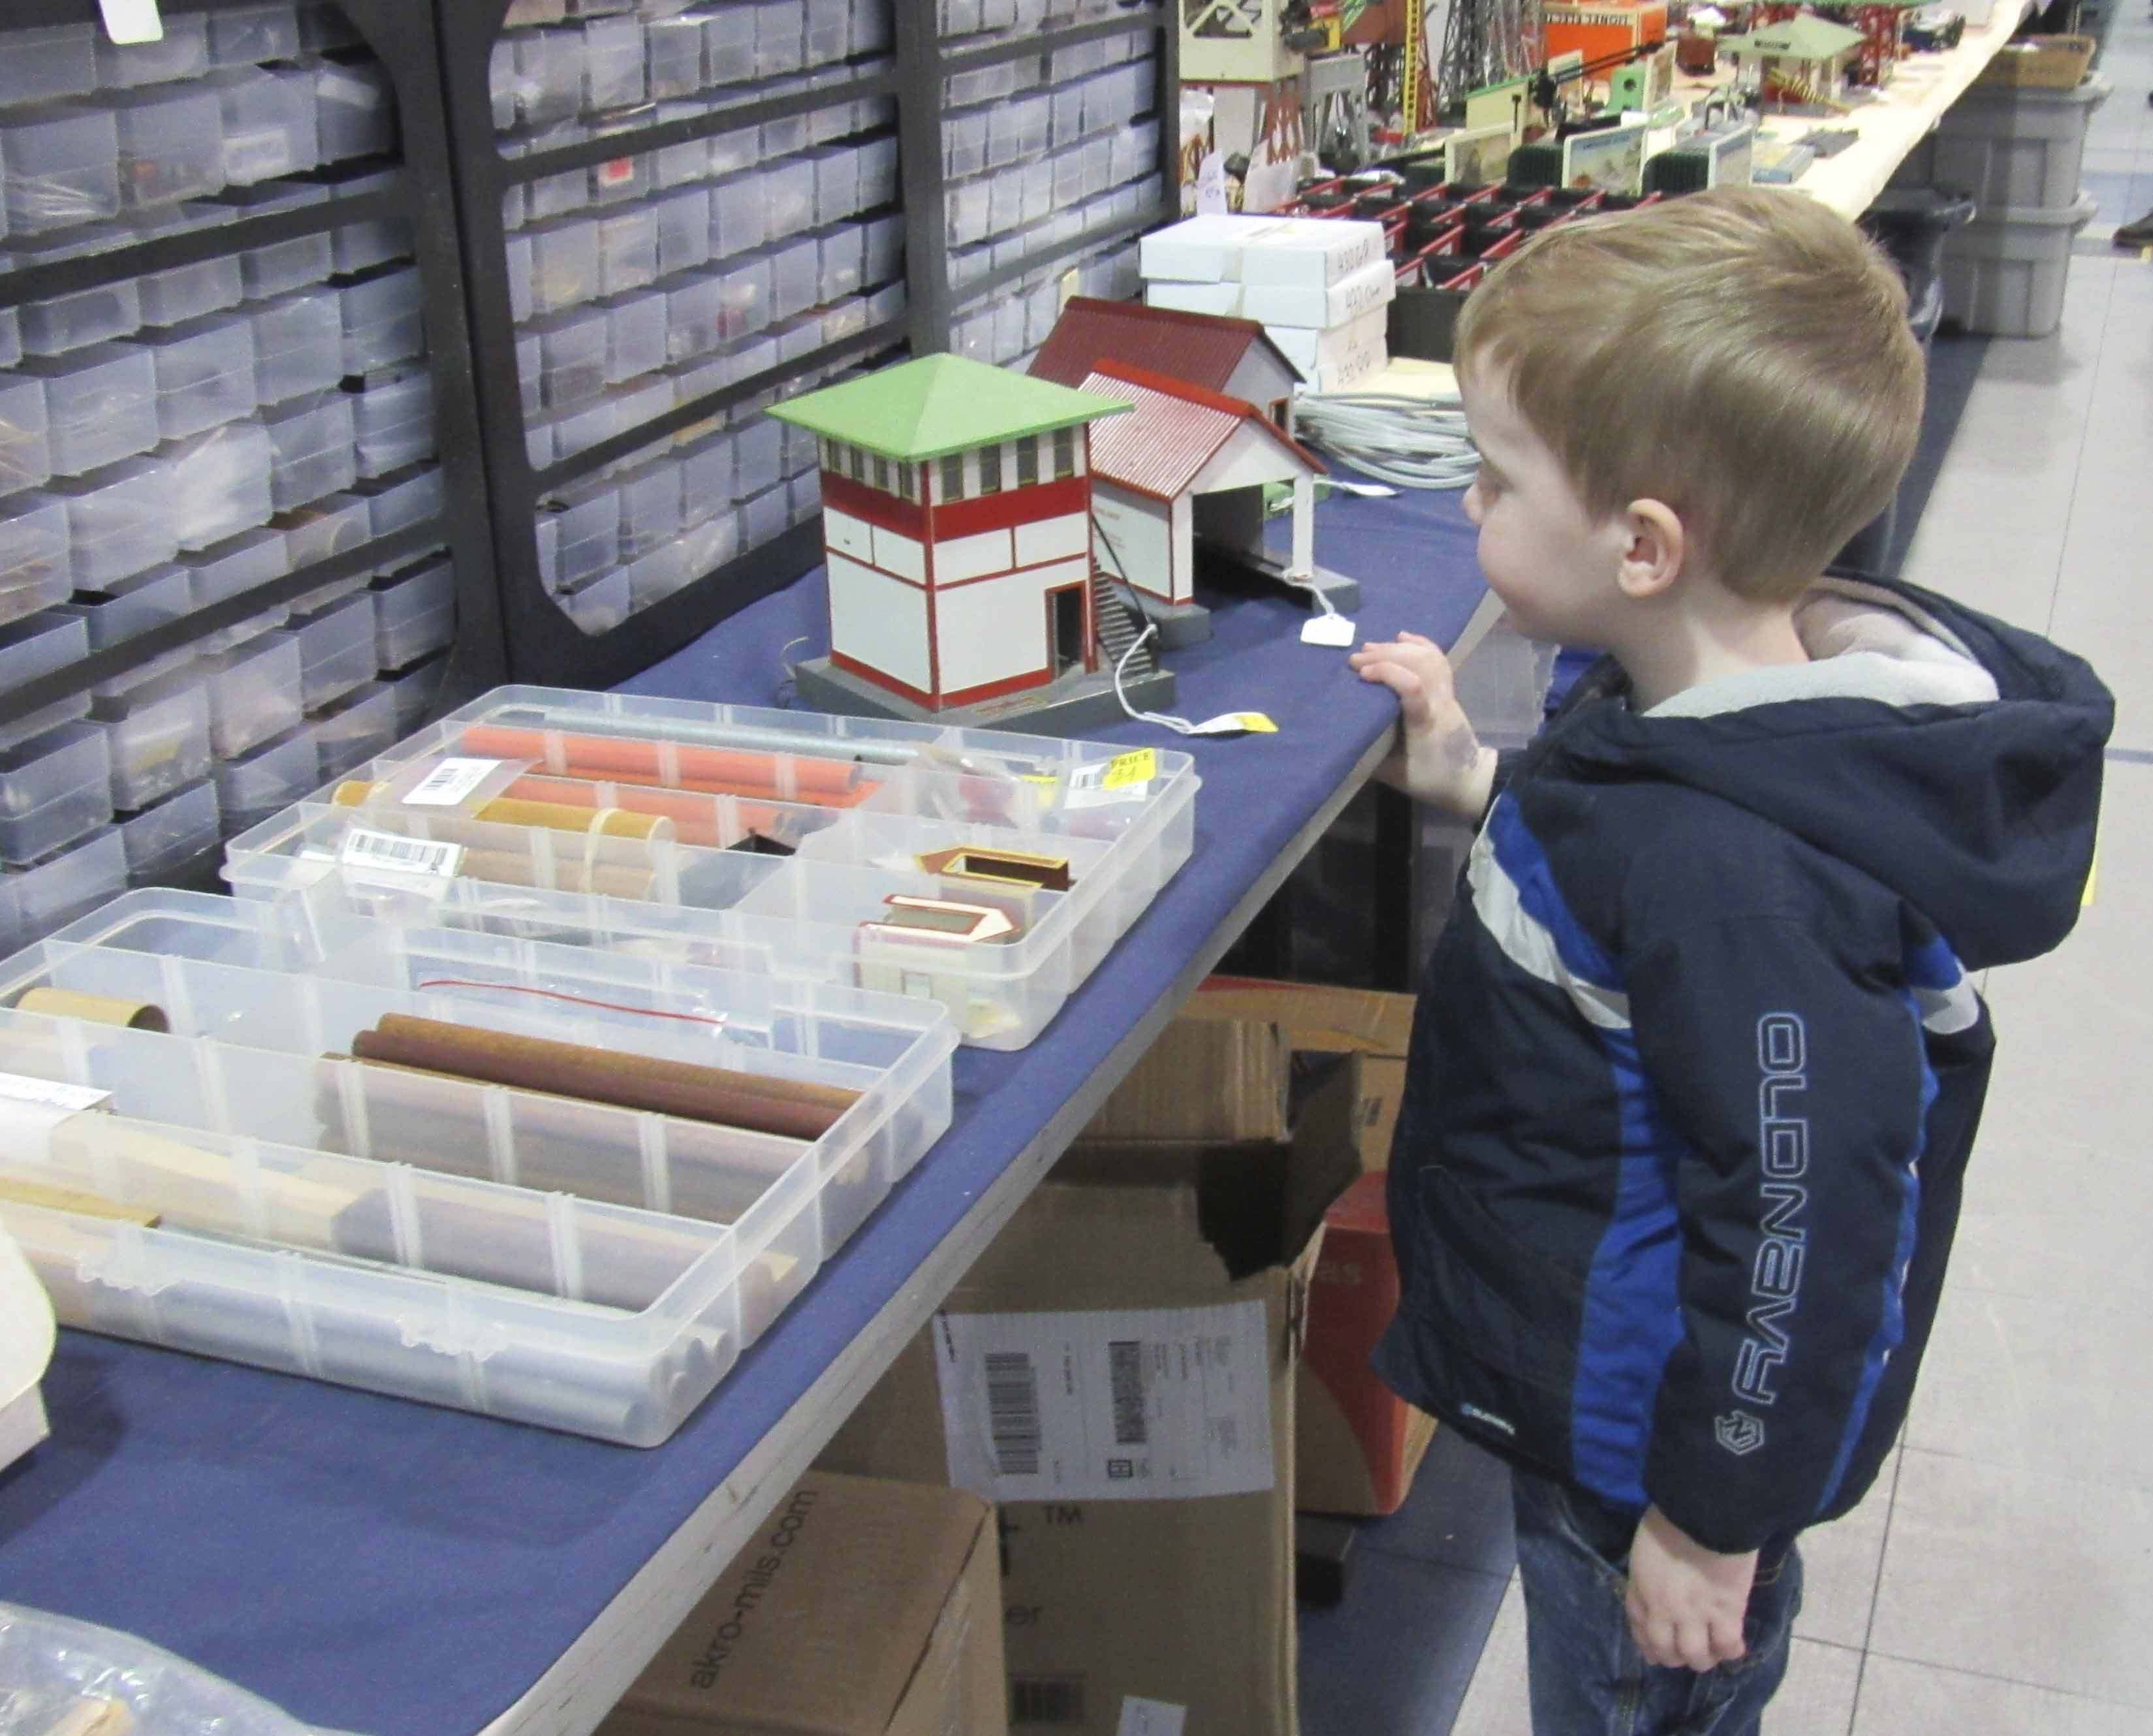 Dax Pasker of Monticello enjoyed taking in all of the trains and collectibles at the Train show & Swap Meet in Monticello. There were 19 vendors on hand, selling model train parts and accessories, as well as railroad memorabilia.